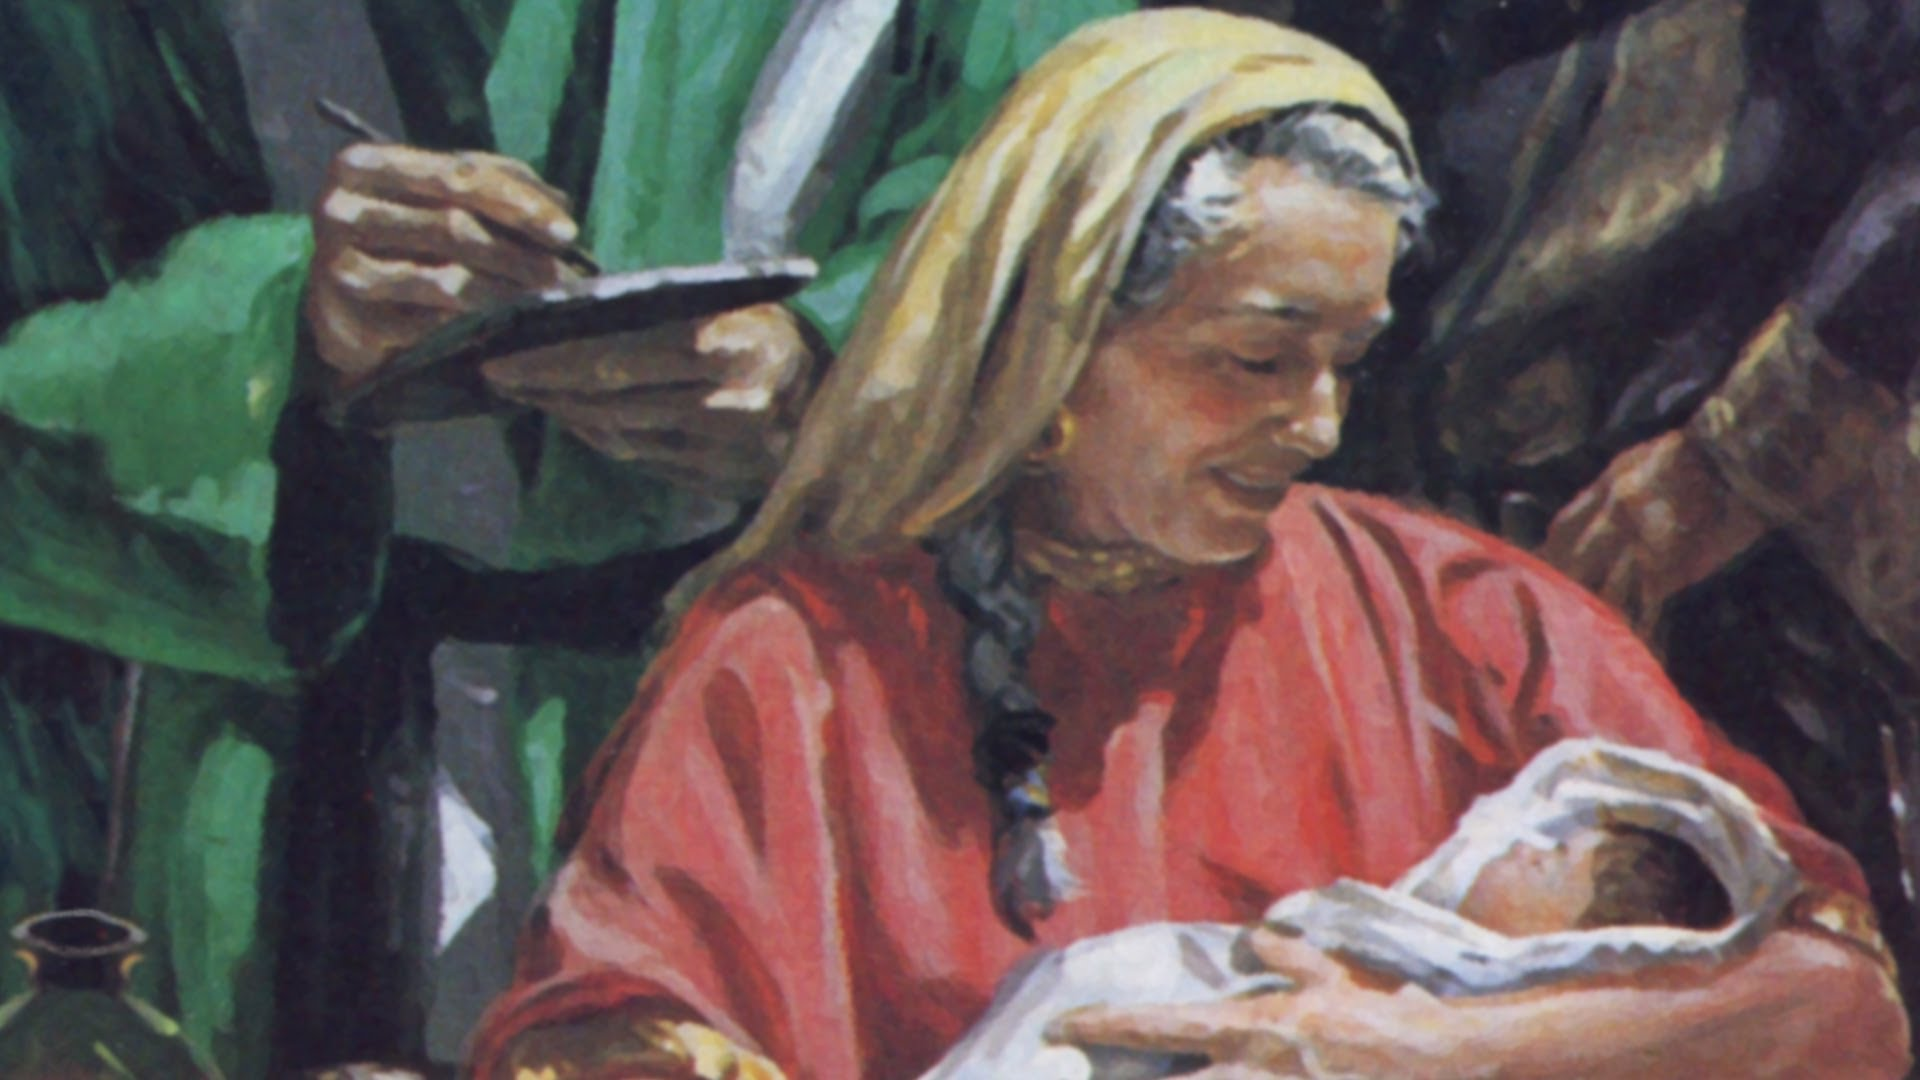 Homily on The Birth of John the Baptist.